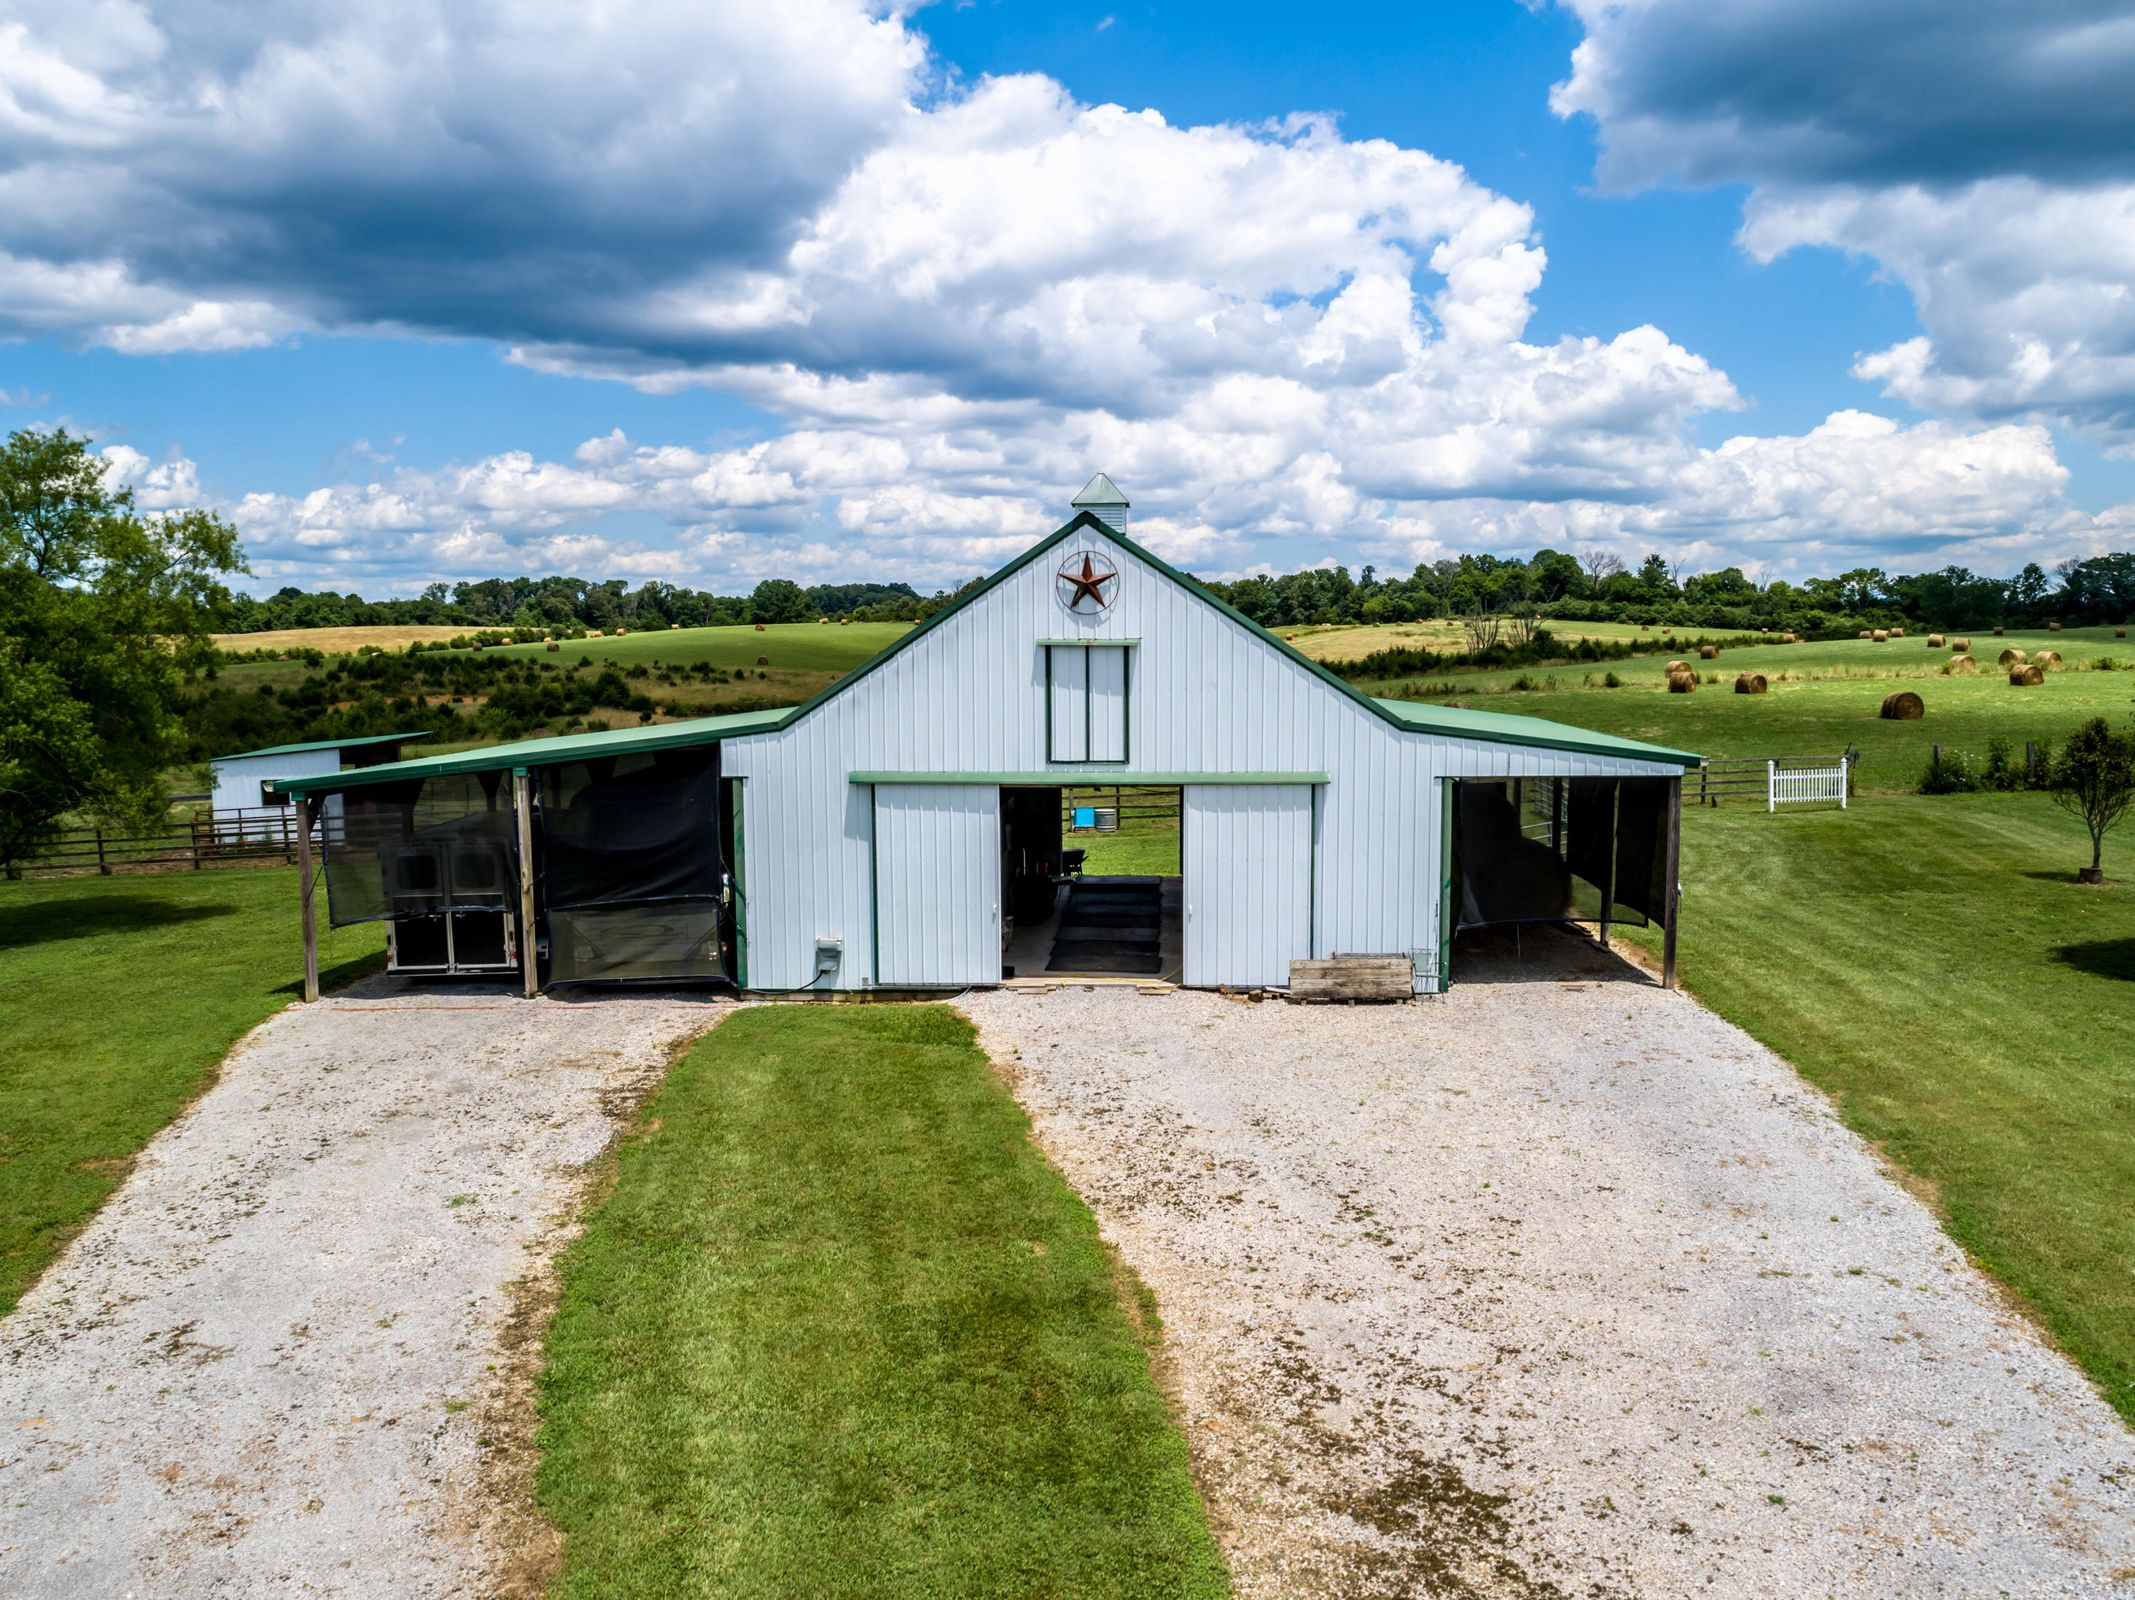 The 4 stall barn +